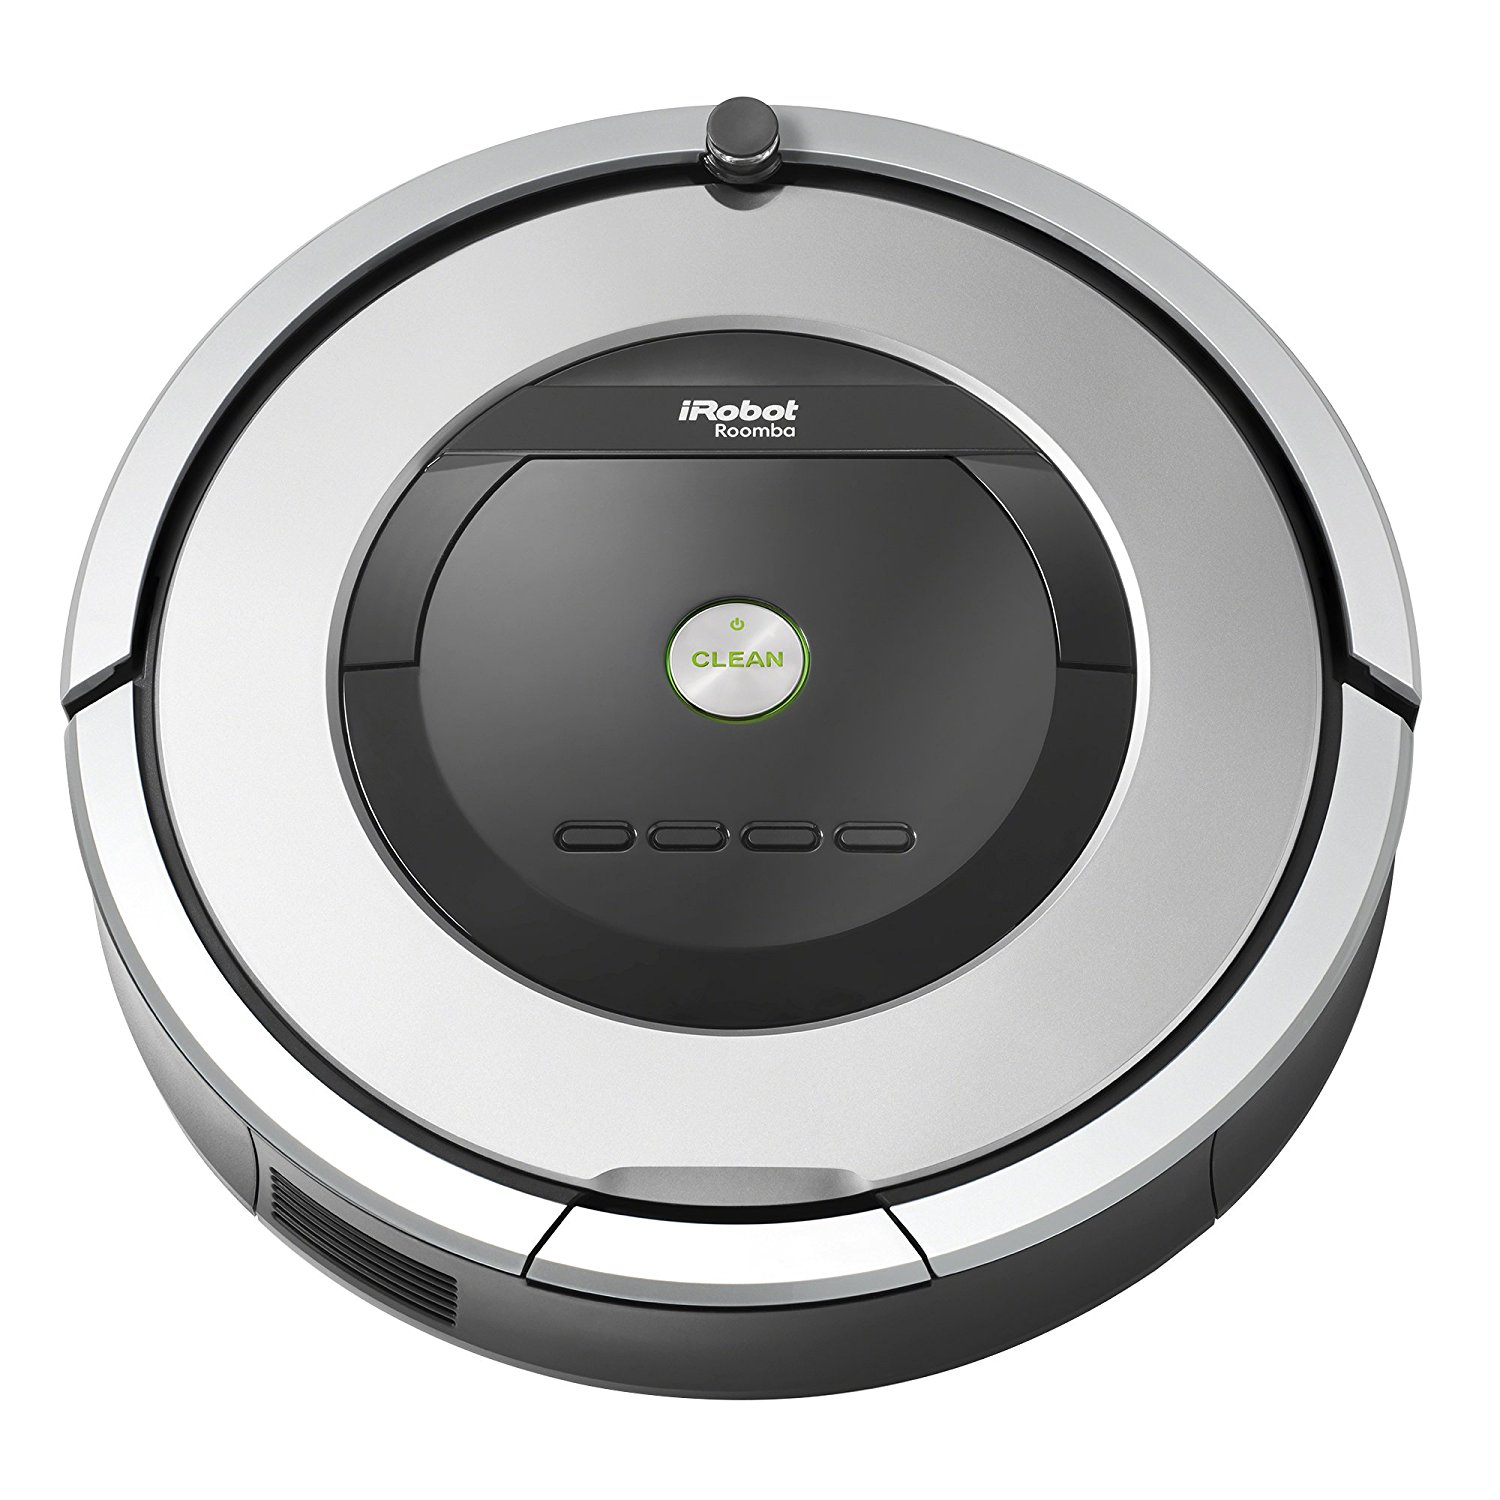 irobot roomba 860 robotic vacuum cleaner - Roomba Vacuum Reviews